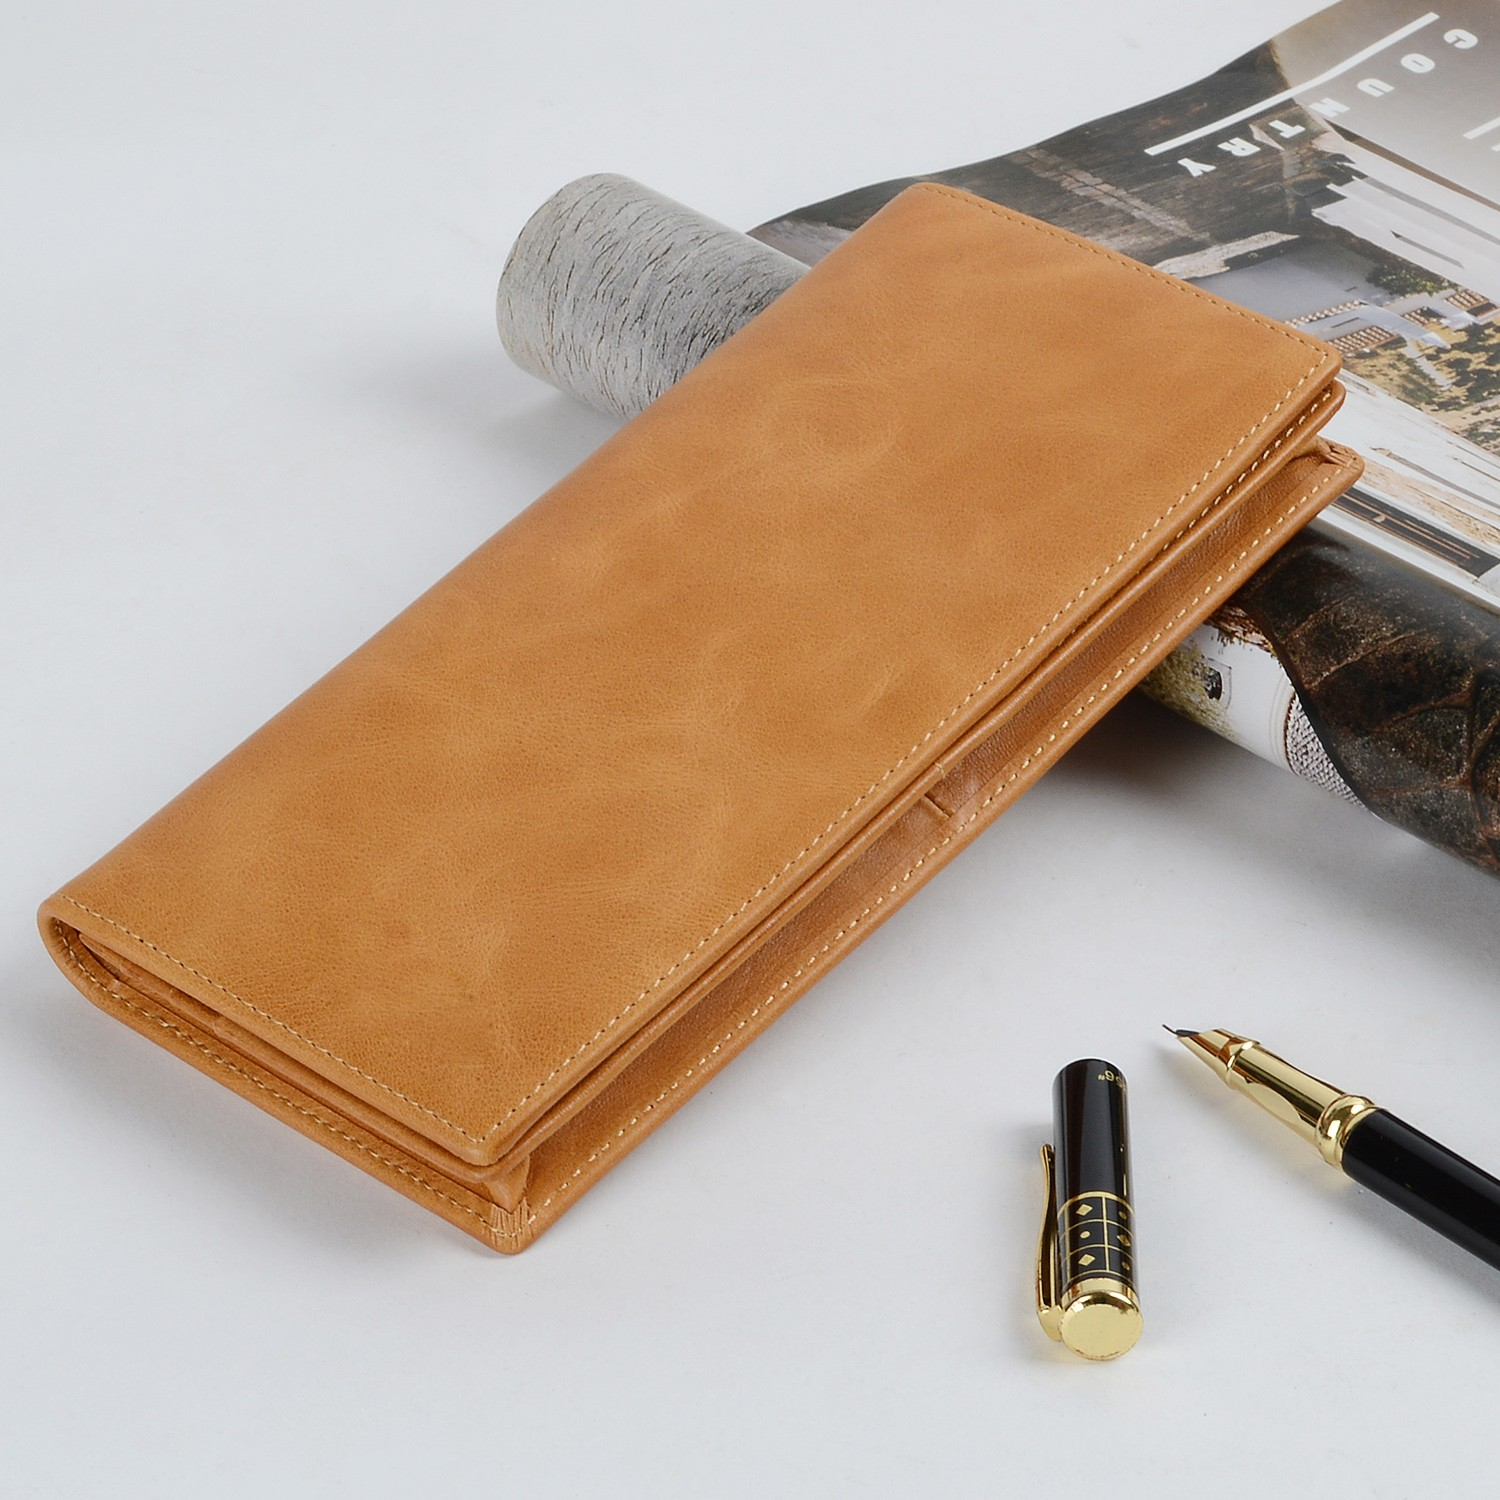 AIVI leather card holder wallet manufacturer for phone XS Max-6